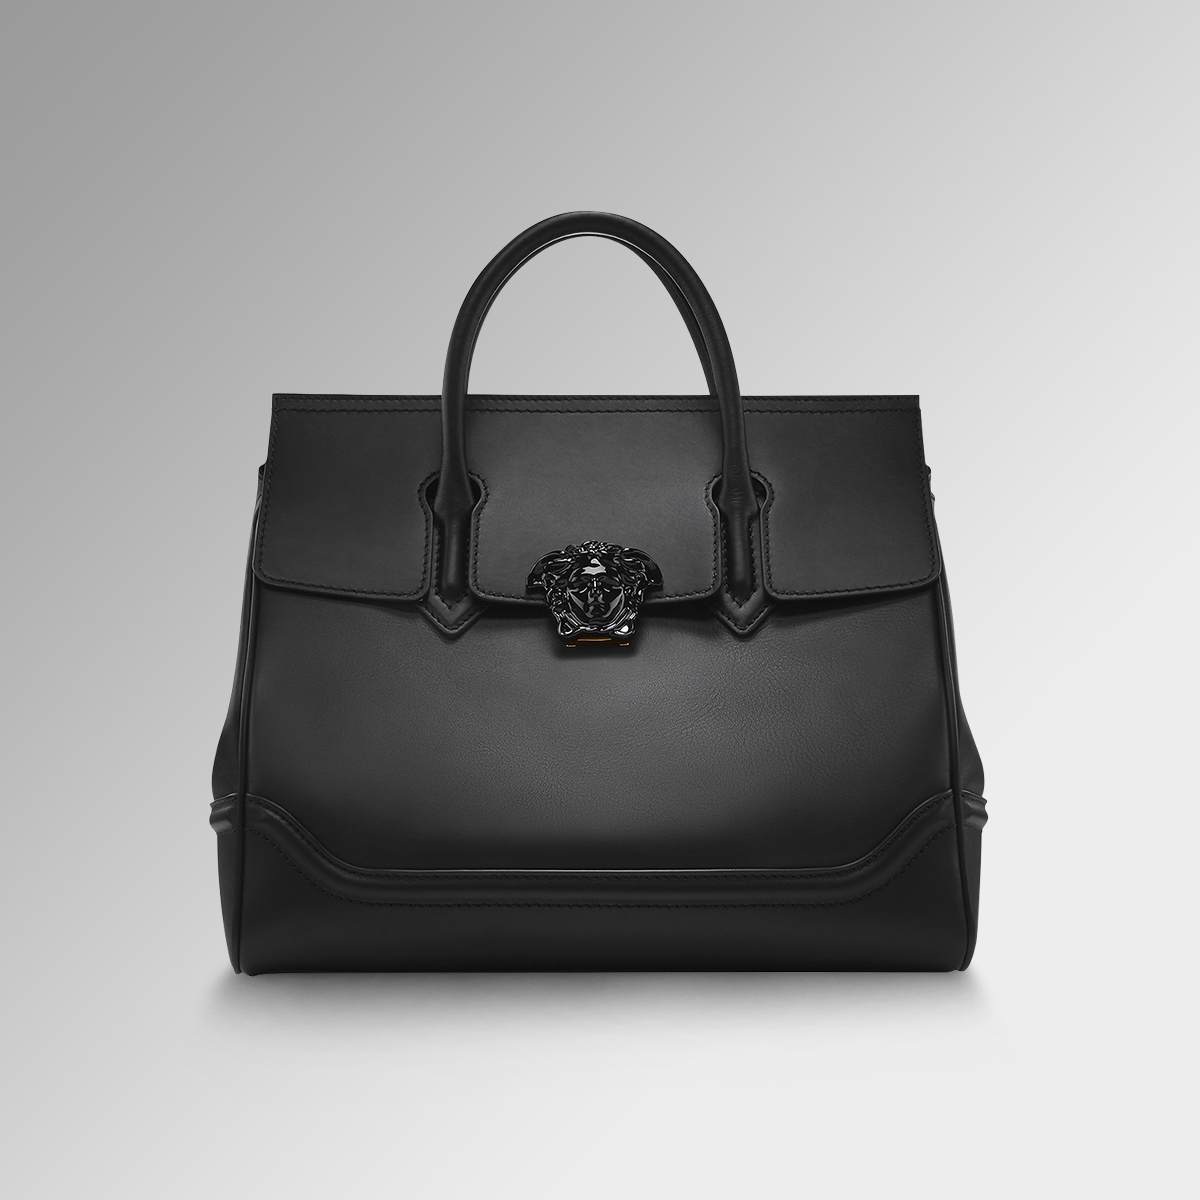 3ab548abf1c3f The It-bag is defined by the iconic Medusa head